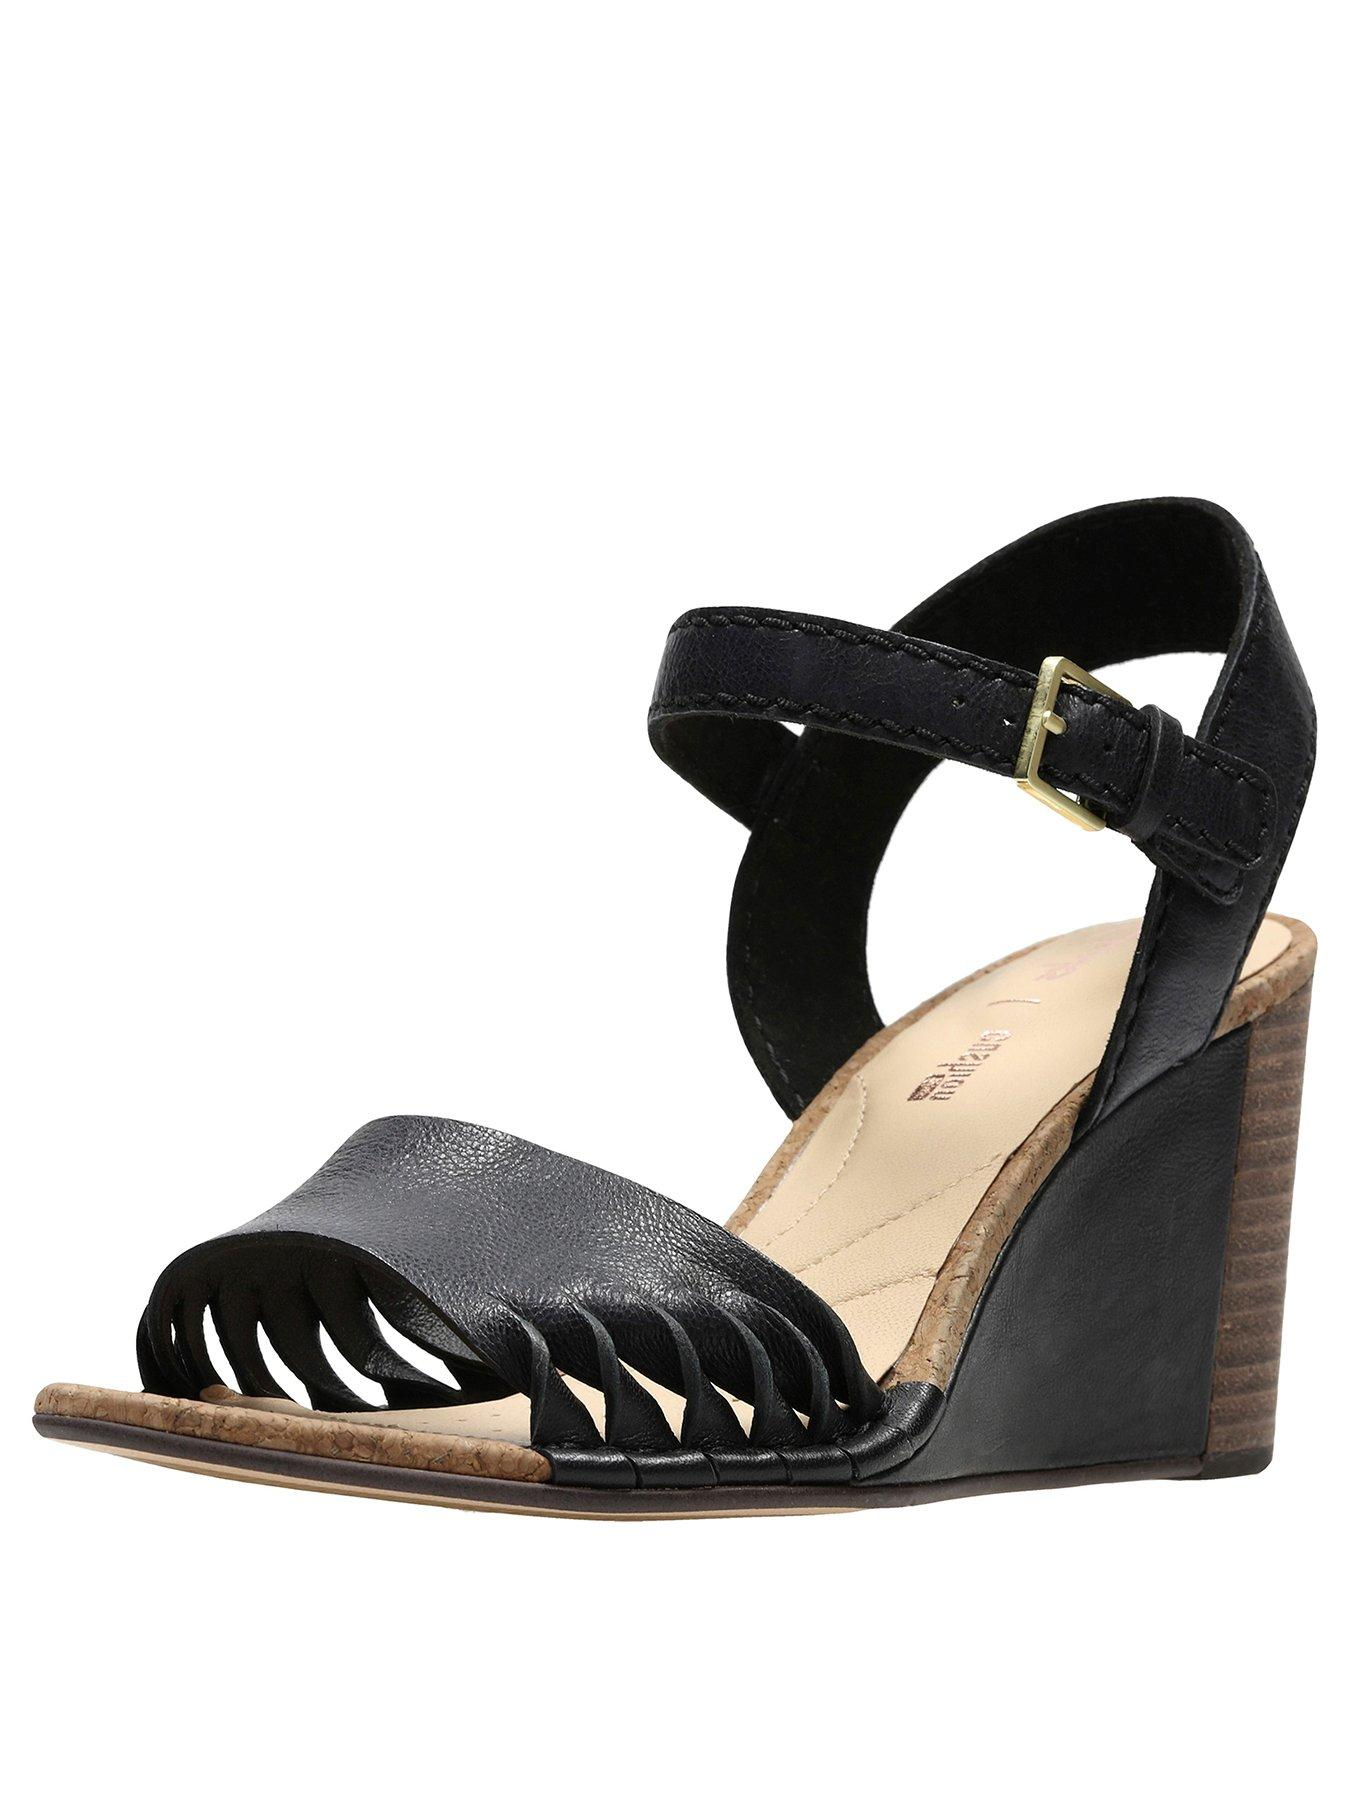 NEW CLARKS SPICED POPPY WOMENS BLACK LEATHER WEDGE SANDALS SIZE 8 42